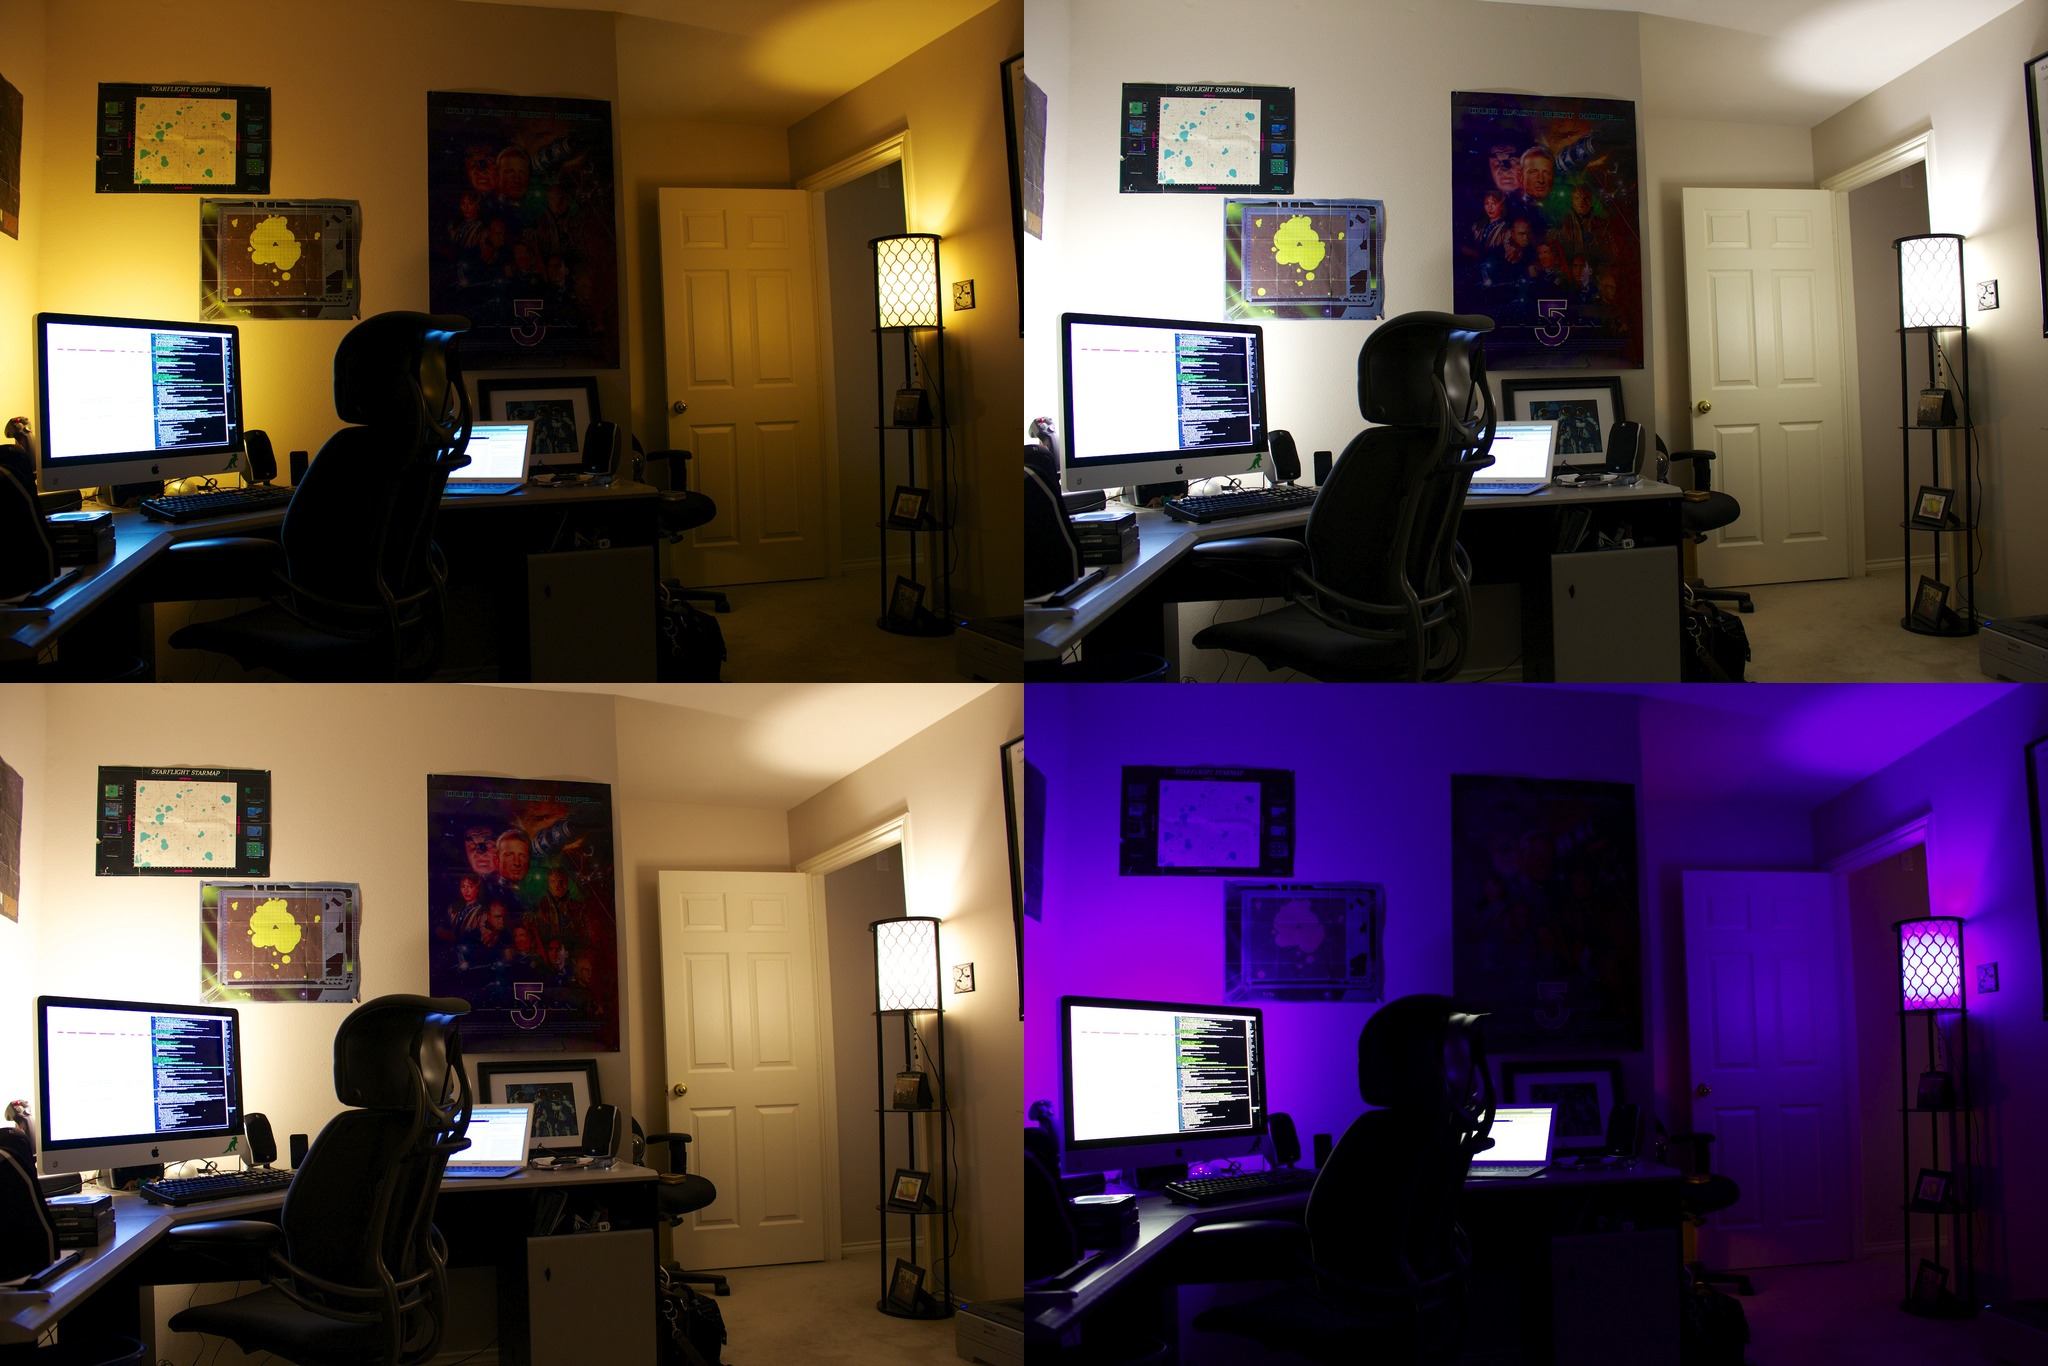 The author's office. Morning at top left, day at top right, evening at lower left, and night at bottom right.